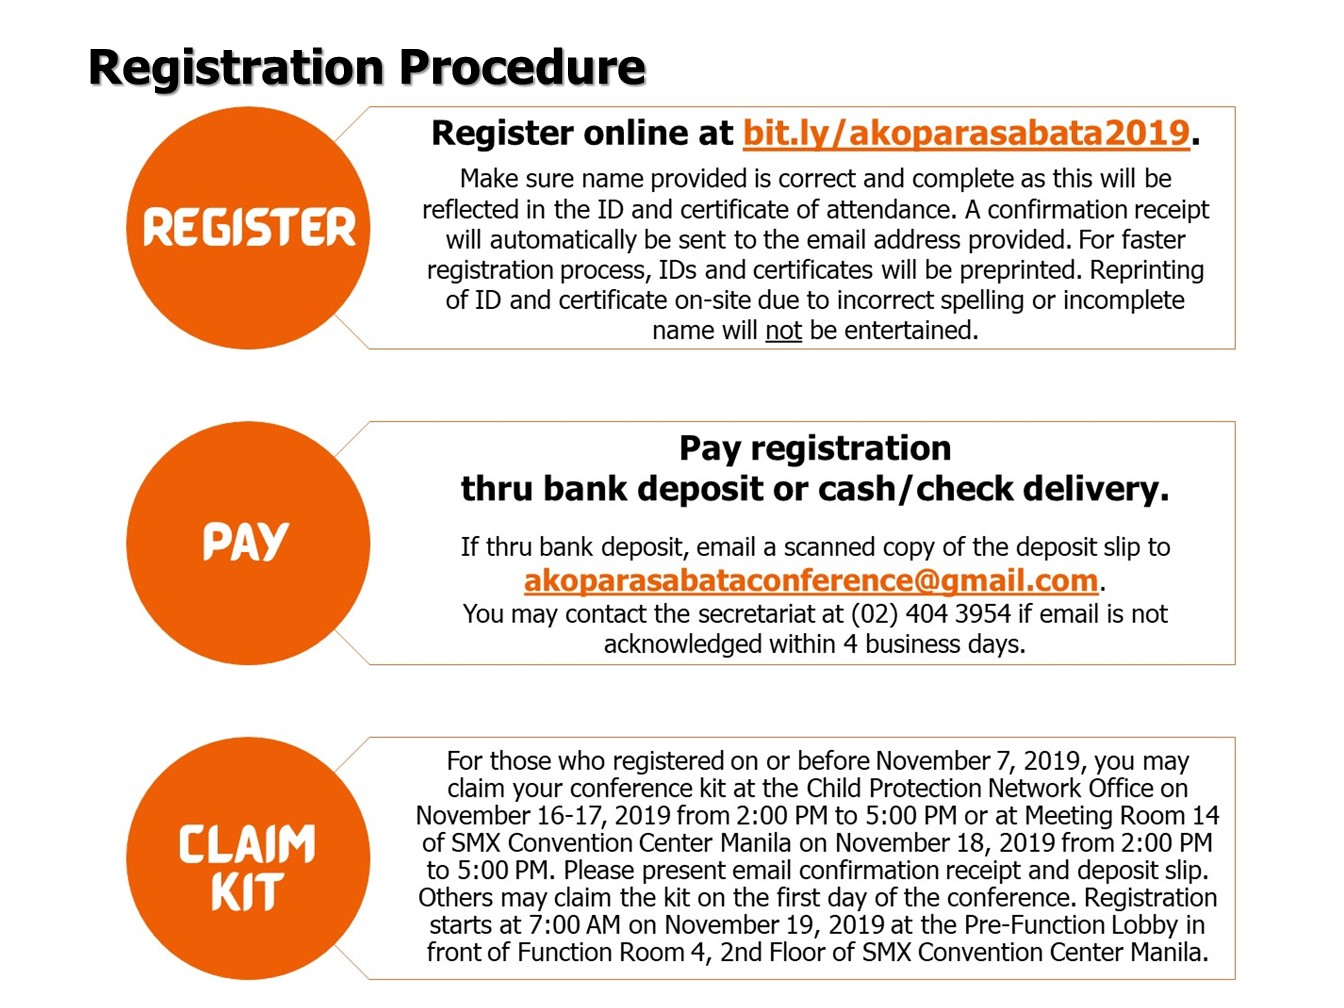 APSB 2019 Registration Procedure